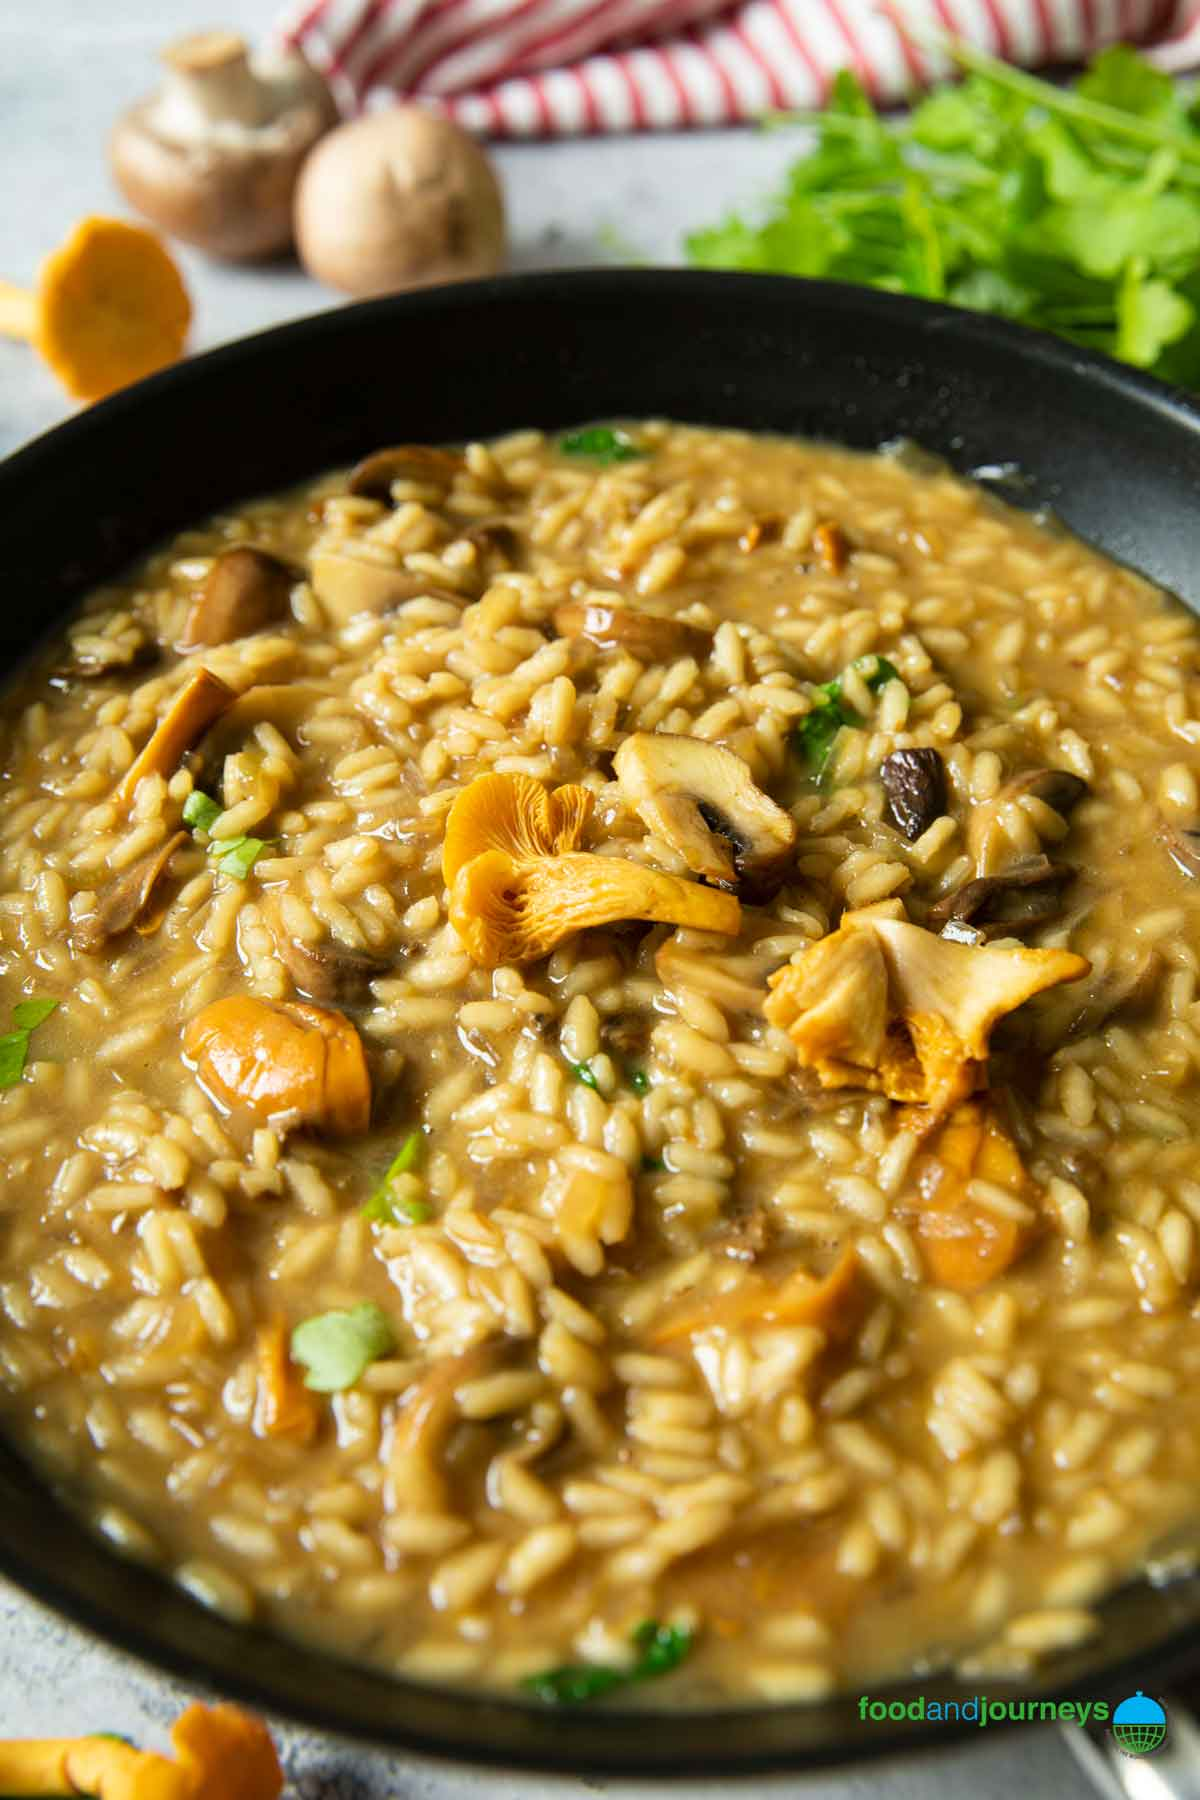 A closer shot of a pan of risotto ai funghi, highlighting the creaminess and the bits of mushrooms and parsley in the dish.